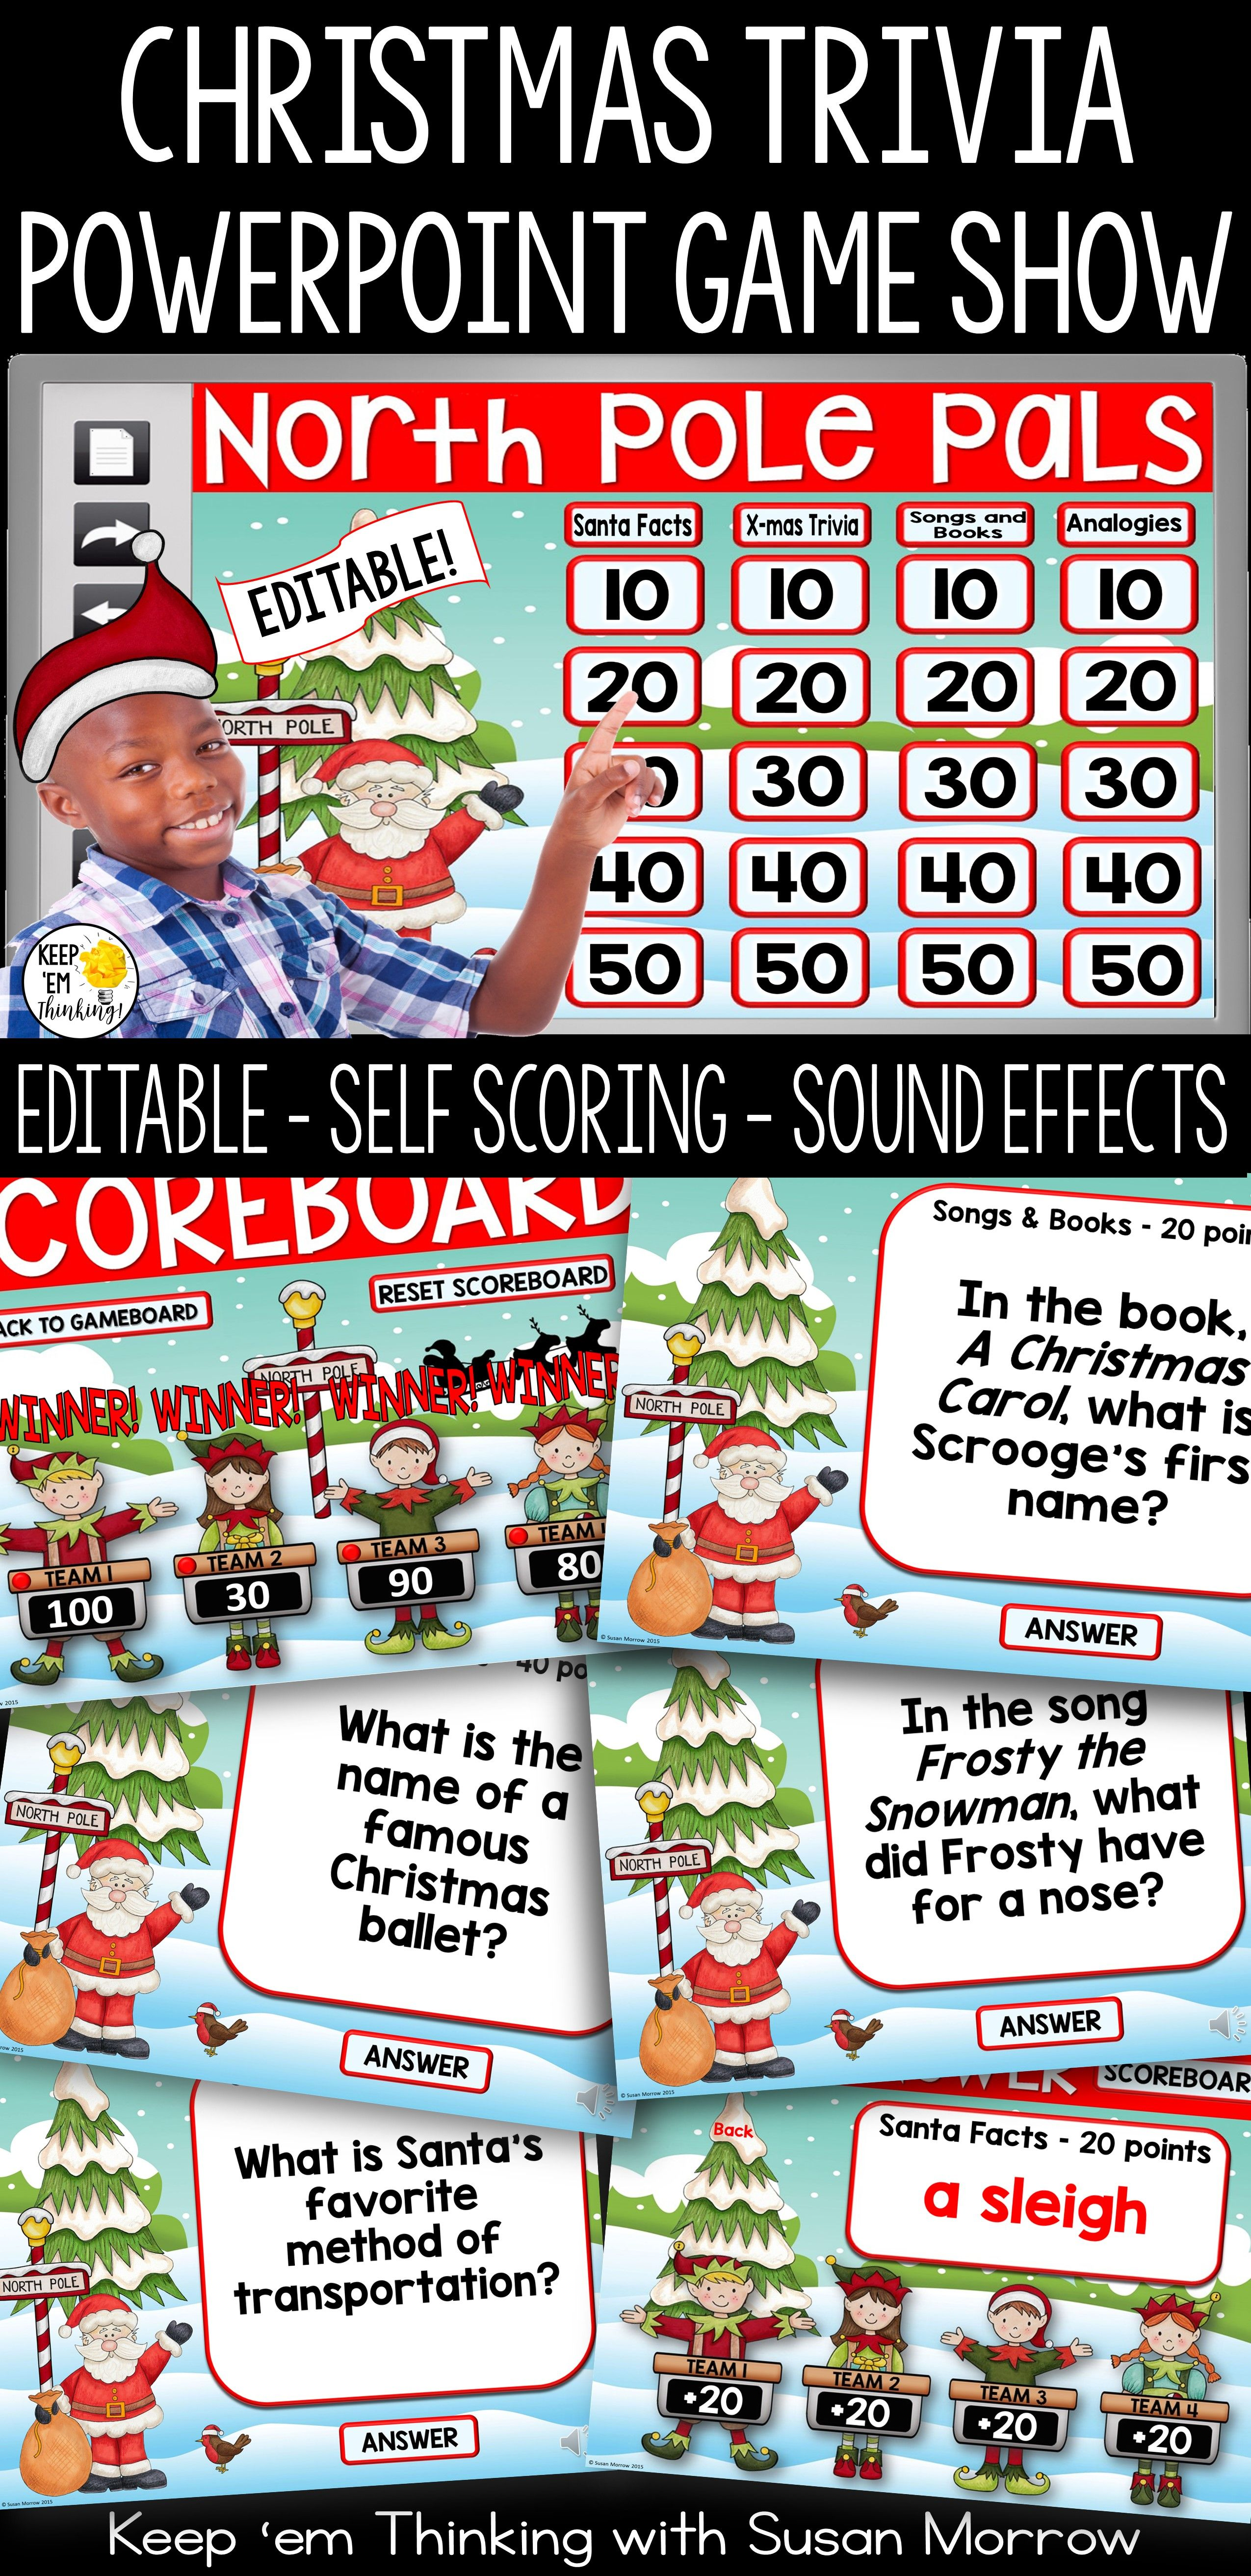 christmas trivia game a powerpoint jeopardy style game show editable christmas trivia games trivia games and trivia - Christmas Jeopardy Game